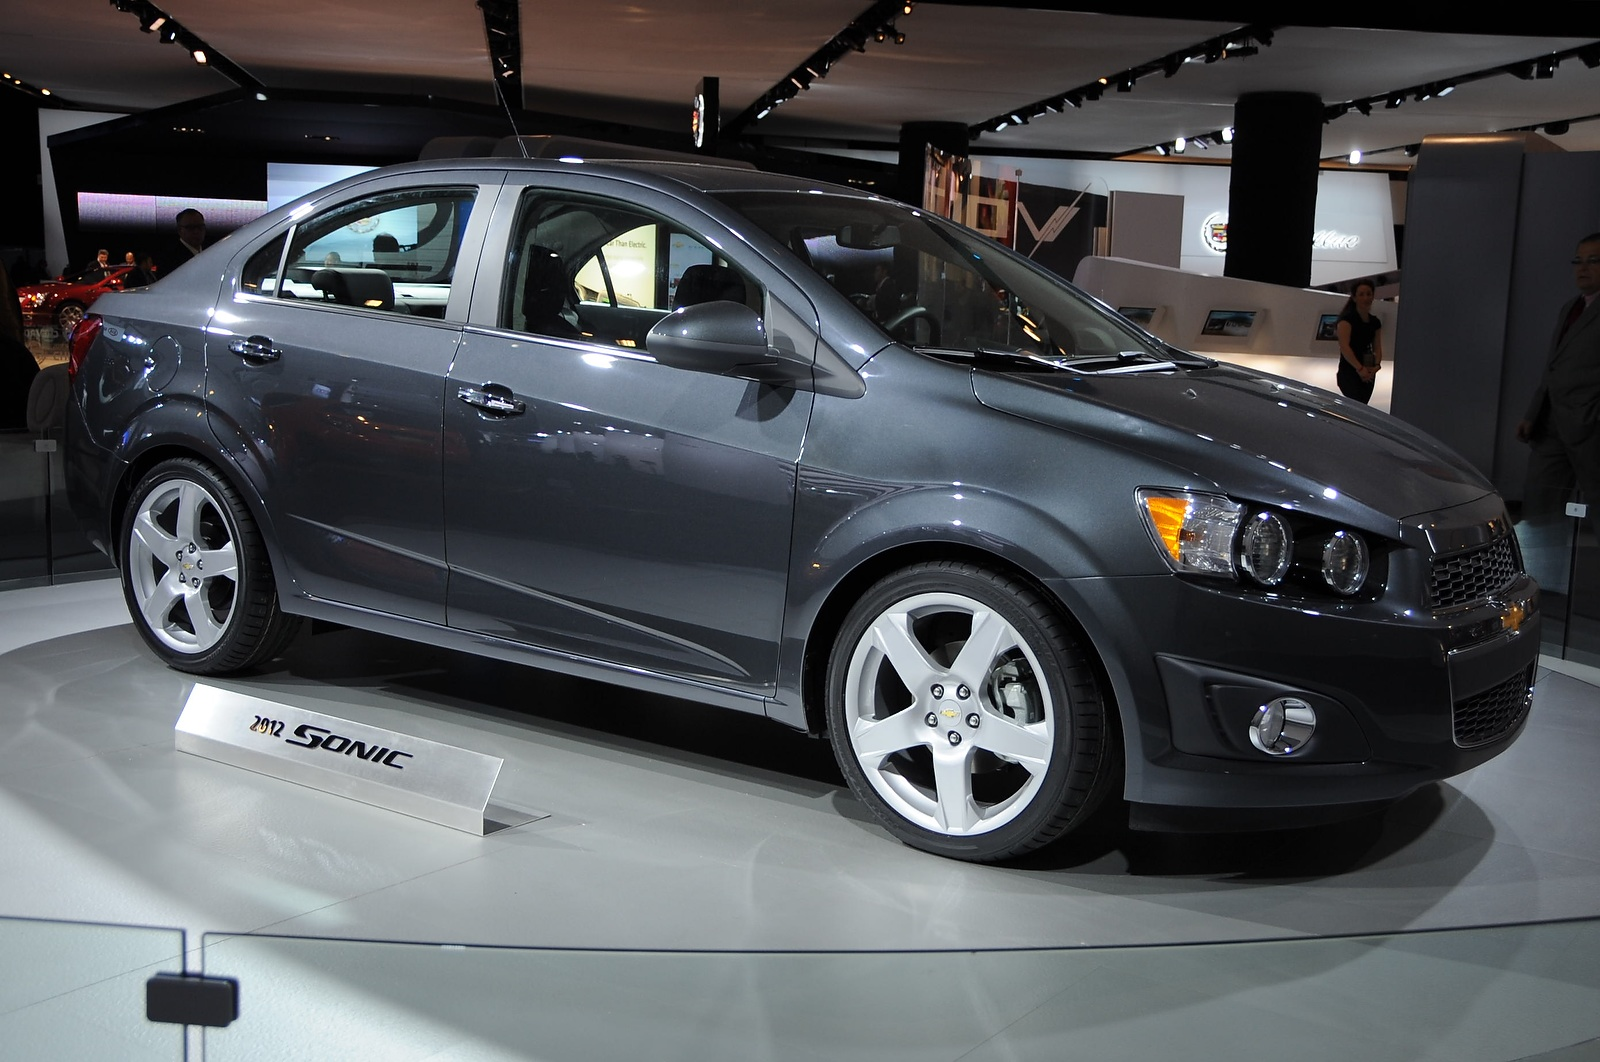 2012 chevrolet sonic earns top safety pick. Black Bedroom Furniture Sets. Home Design Ideas